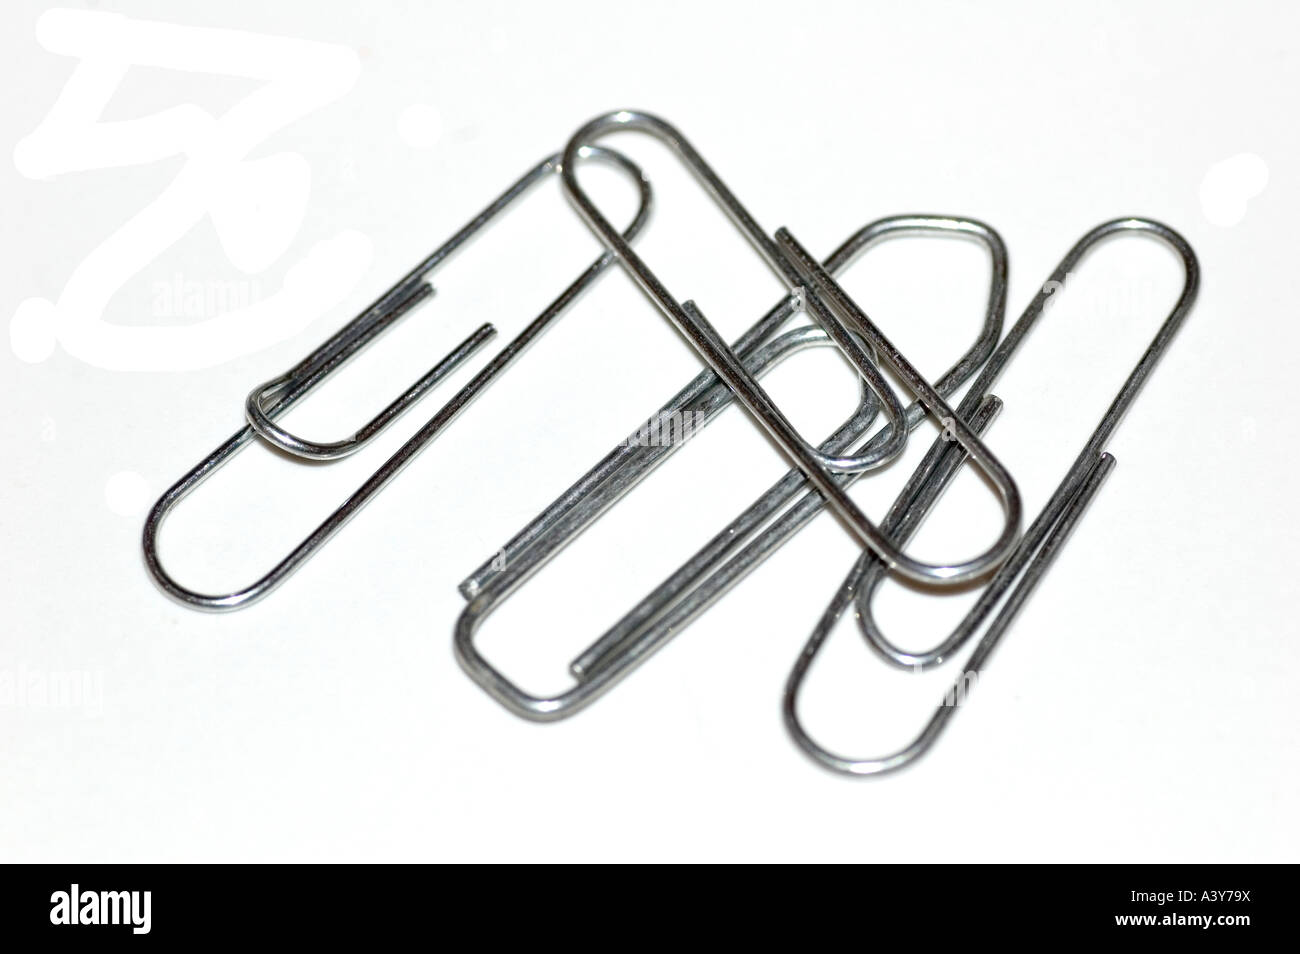 four paper clips cut out stock photo: 10881253 - alamy